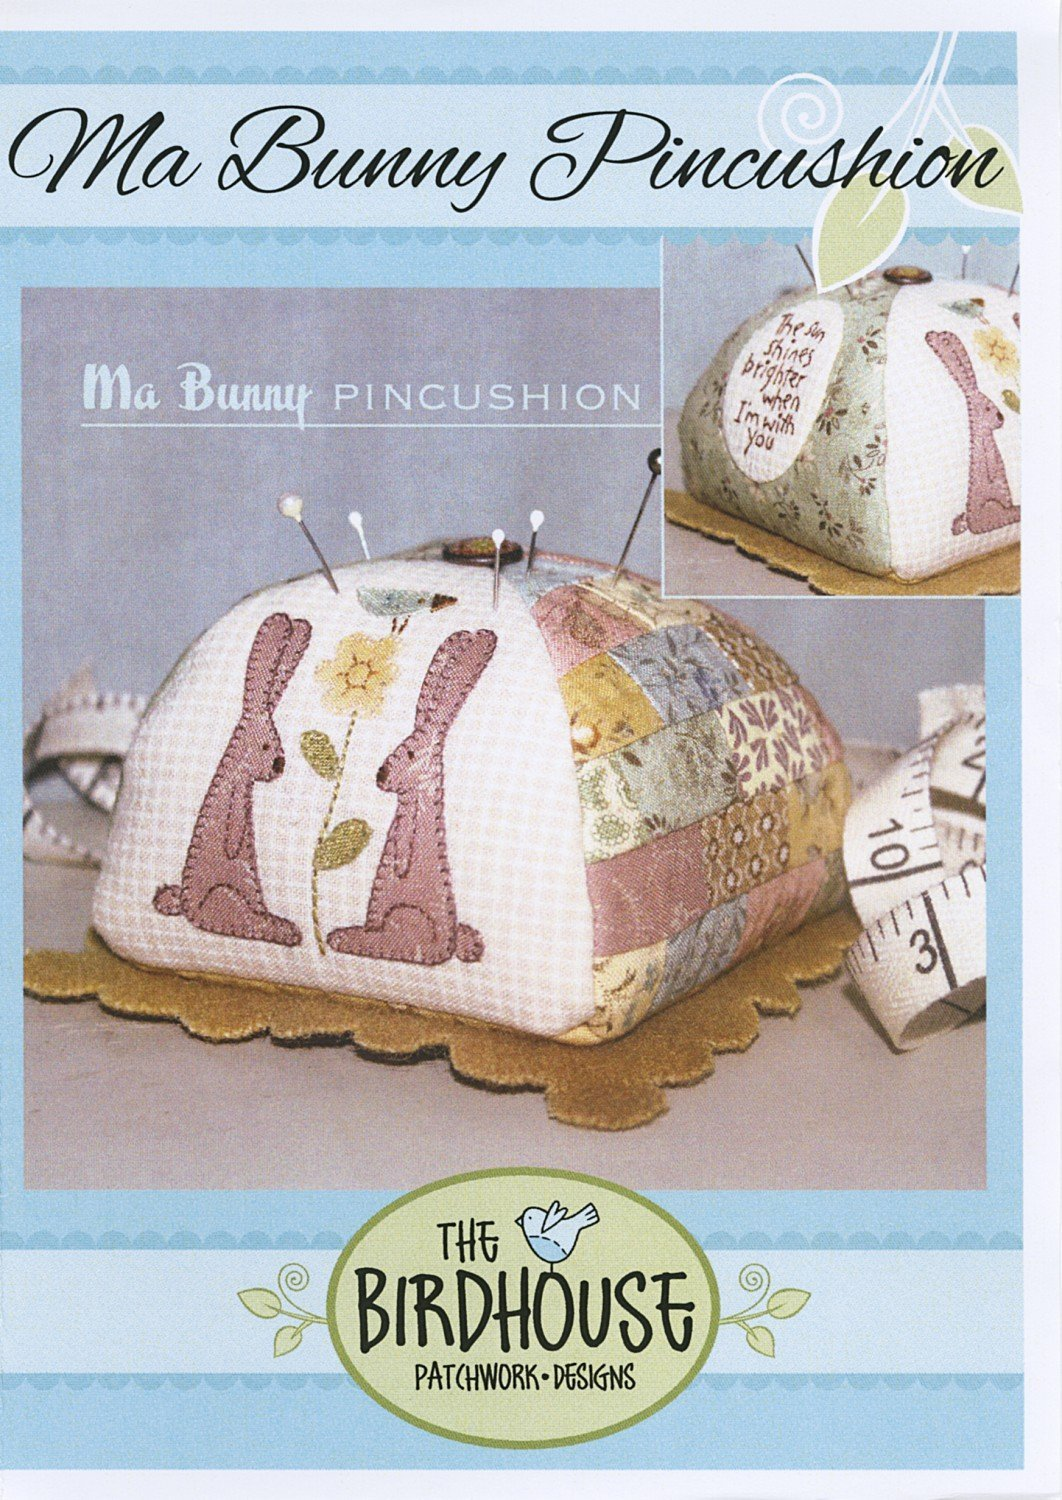 Ma Bunny Pincushion By The Birdhouse